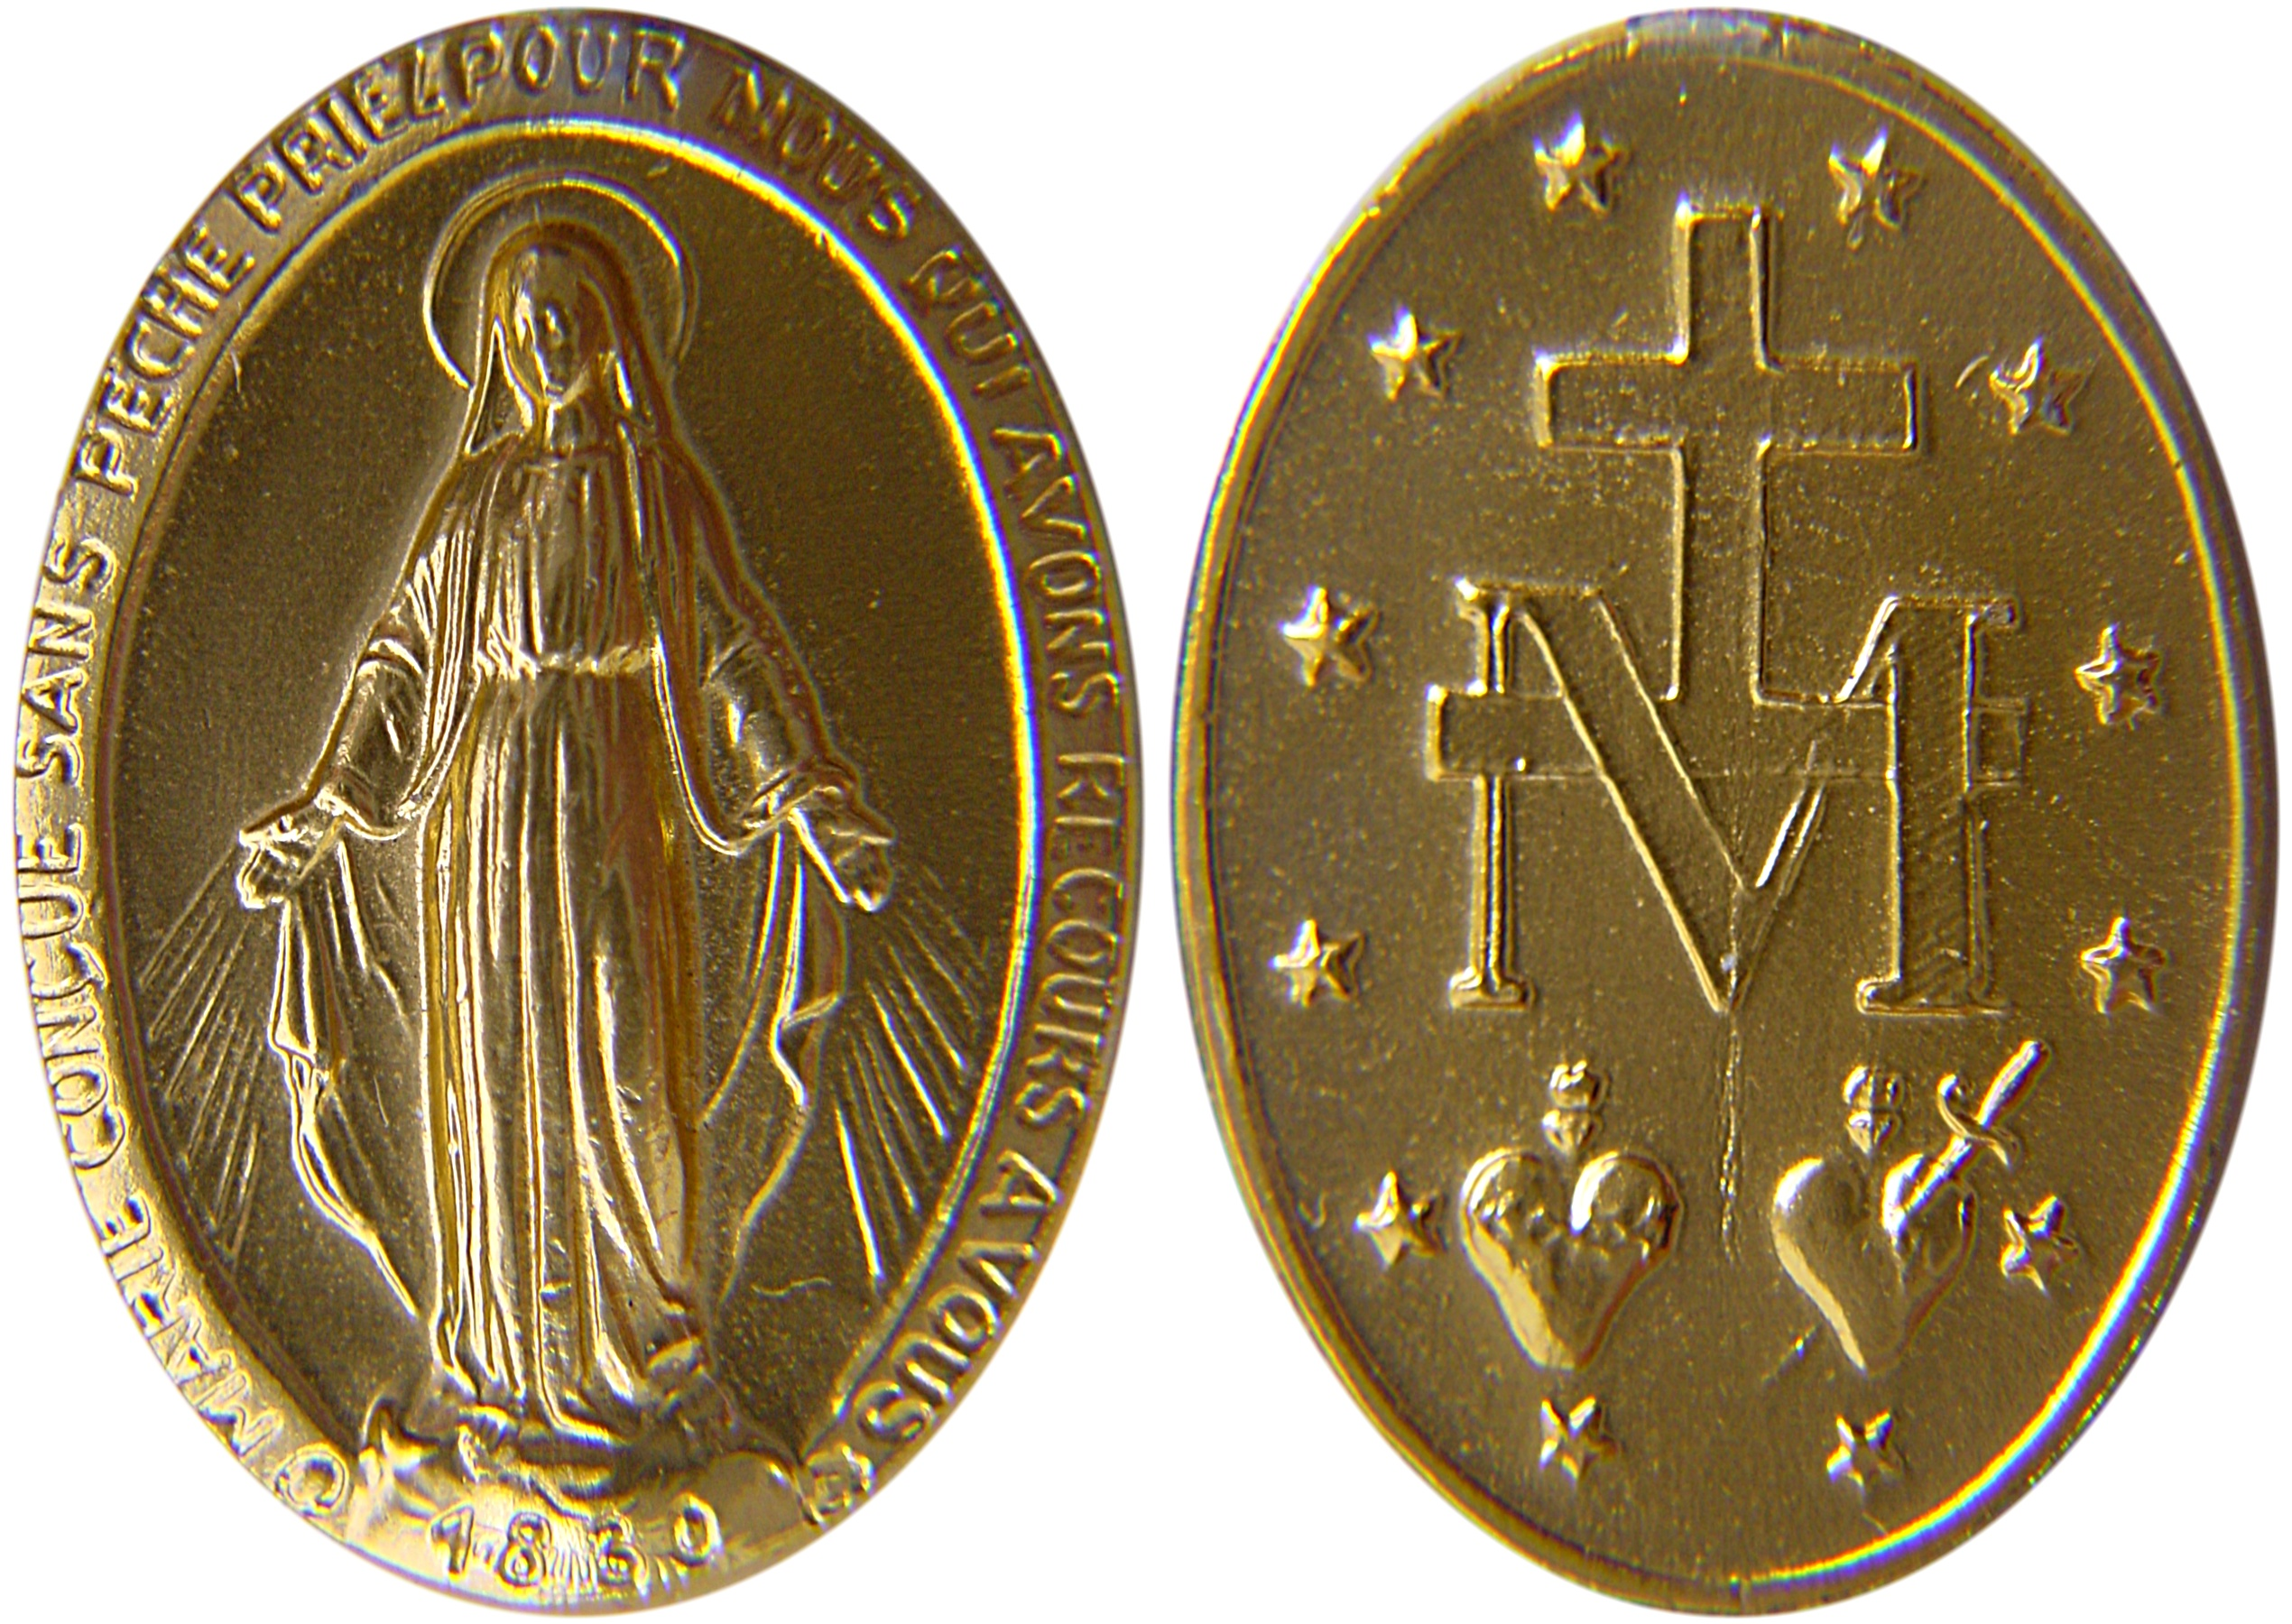 Miraculous Medal shown to St. Catherine Laboure